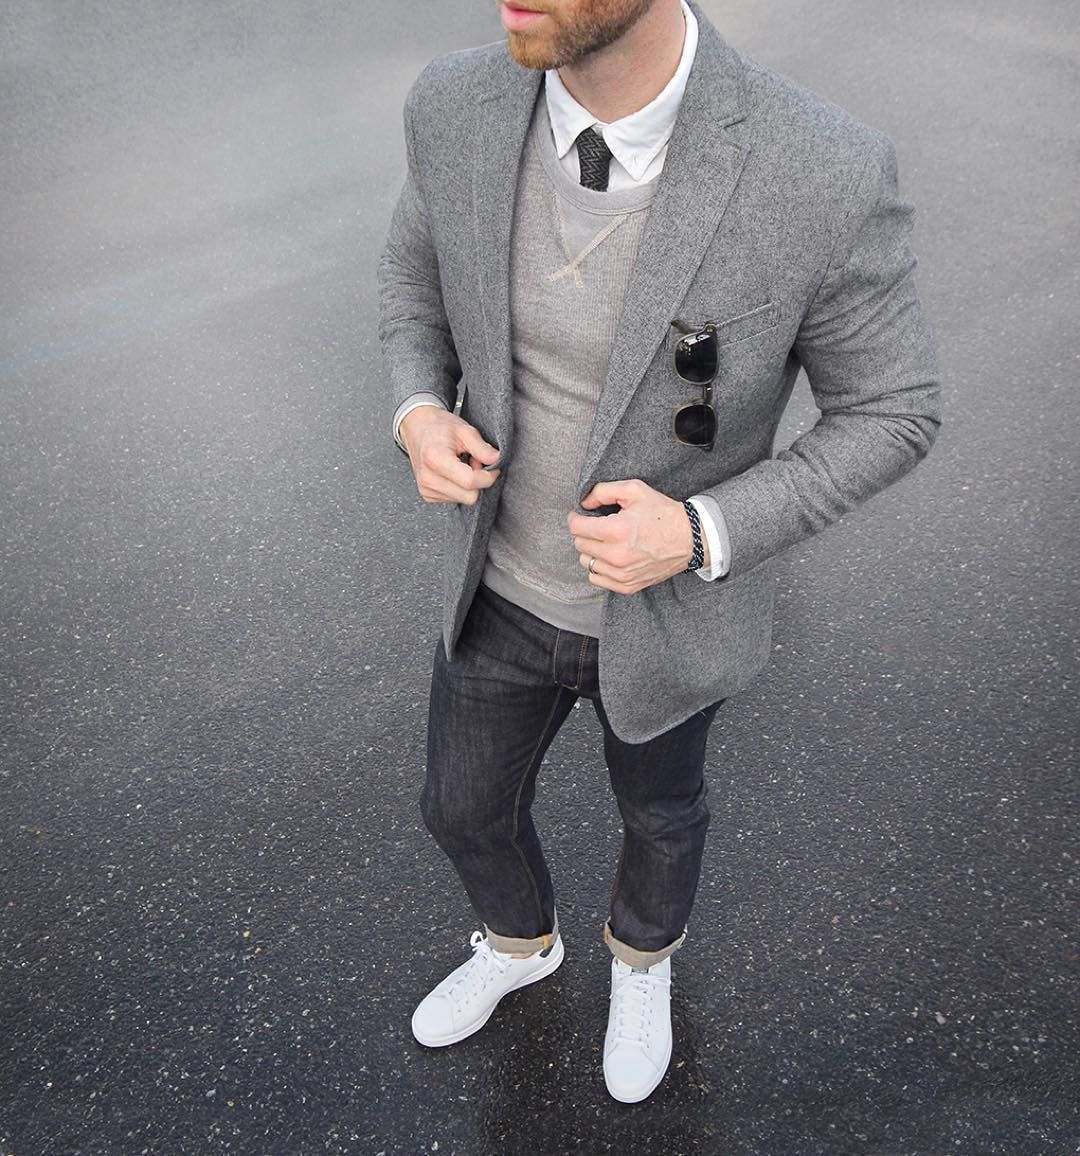 Layered gray #ConcreteCamouflage Blazer/Tie: @bananarepublic Bracelet: @miansai bind rope Denim: @shockoe_atelier slim como Shoes: @adidasoriginals Stan Smith @nordstrommen Oxford: @grayers Sweatshirt: @jcrew by thepacman82